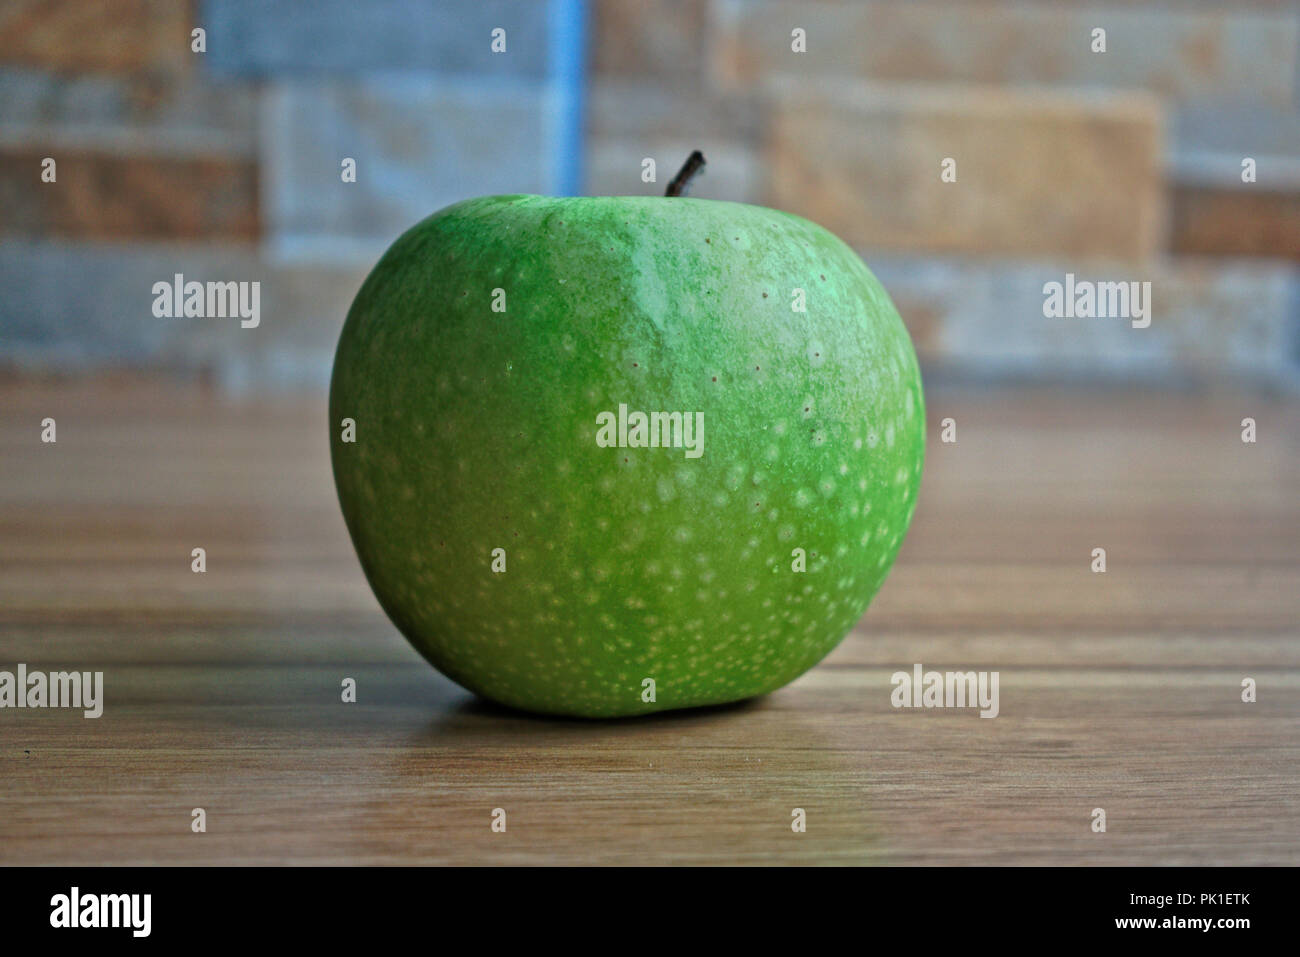 Closeup of a green apple on a wooden table - Stock Image